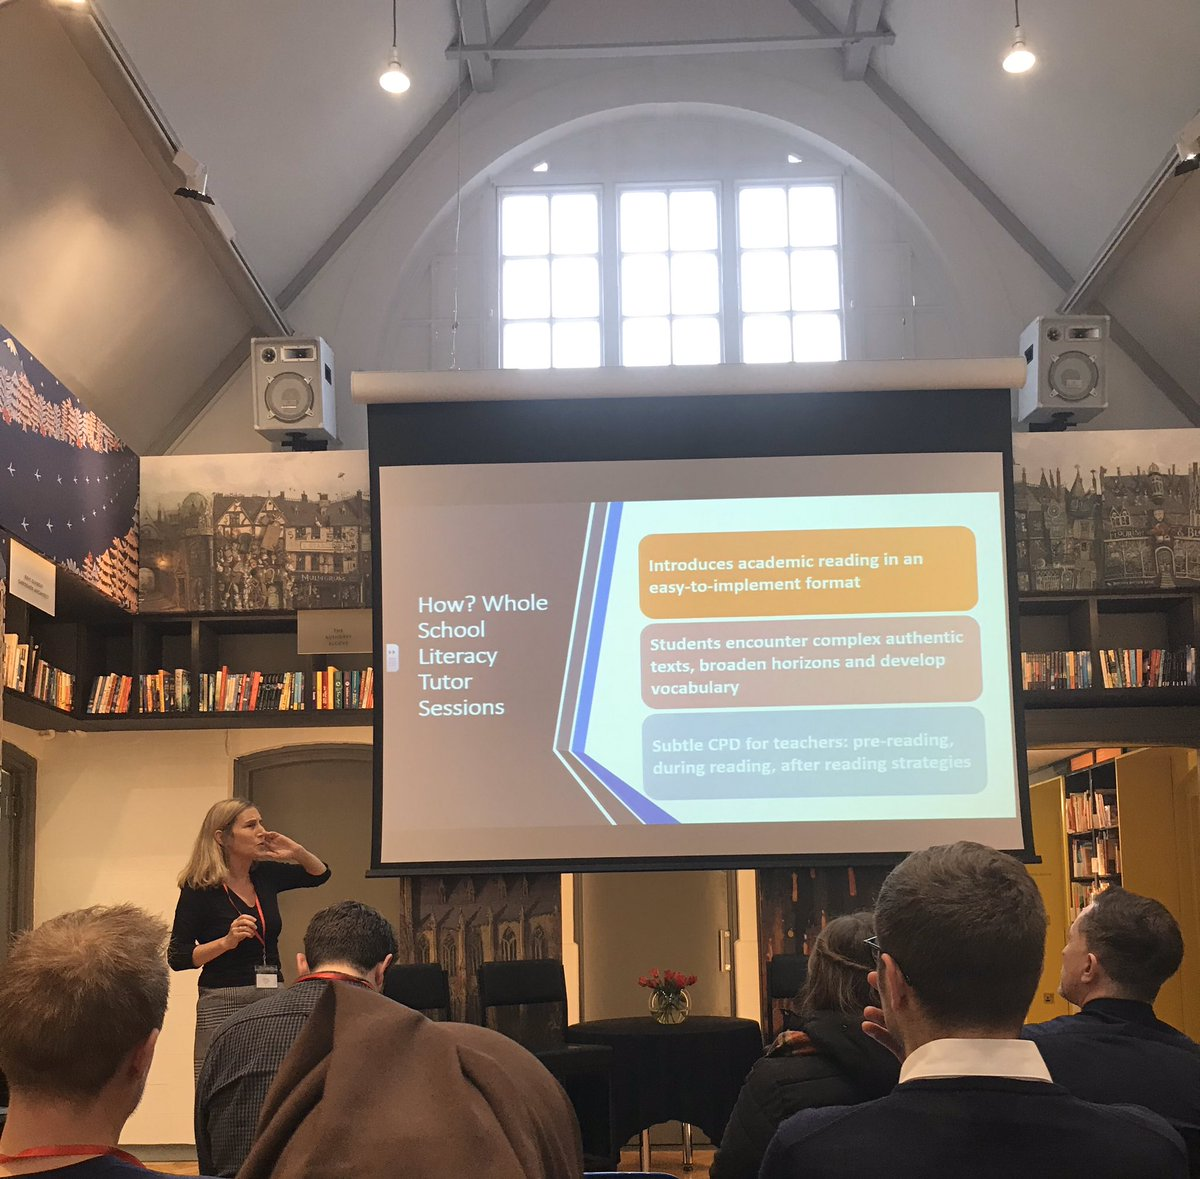 The amazing @AVisserFuray talking about her journey developing academic reading across the curriculum #newvoices19